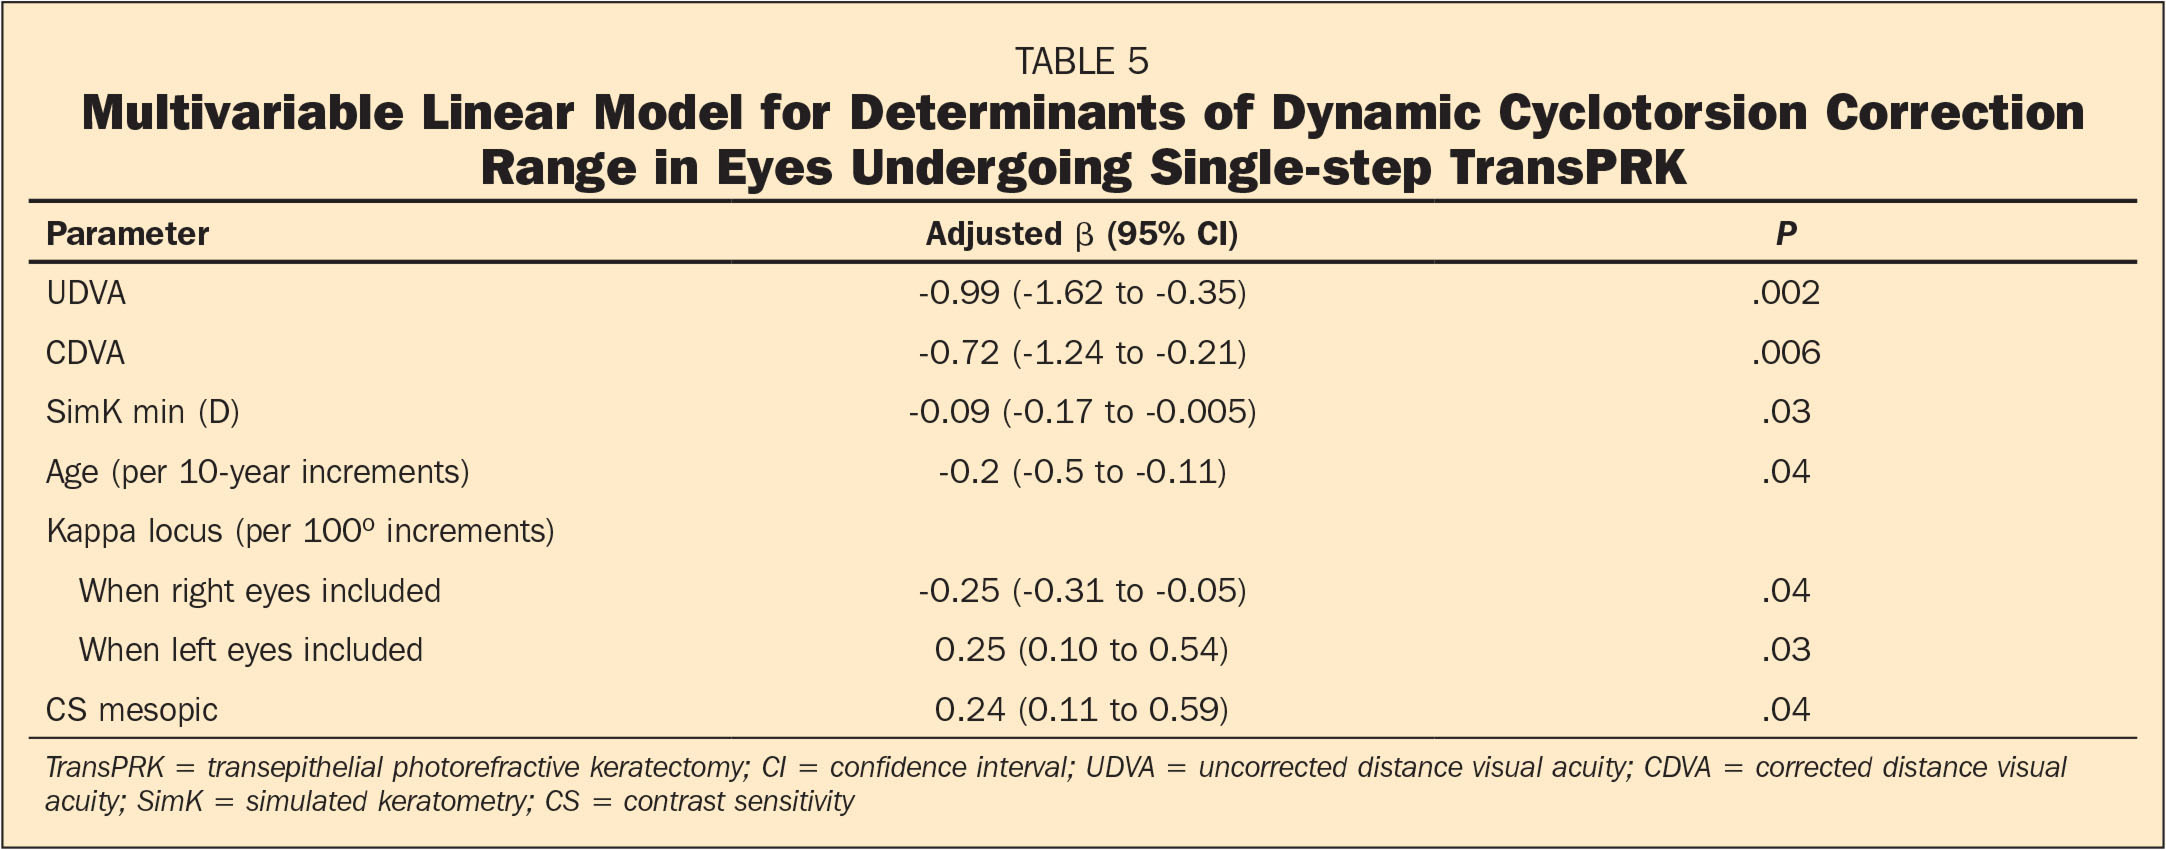 Multivariable Linear Model for Determinants of Dynamic Cyclotorsion Correction Range in Eyes Undergoing Single-step TransPRK